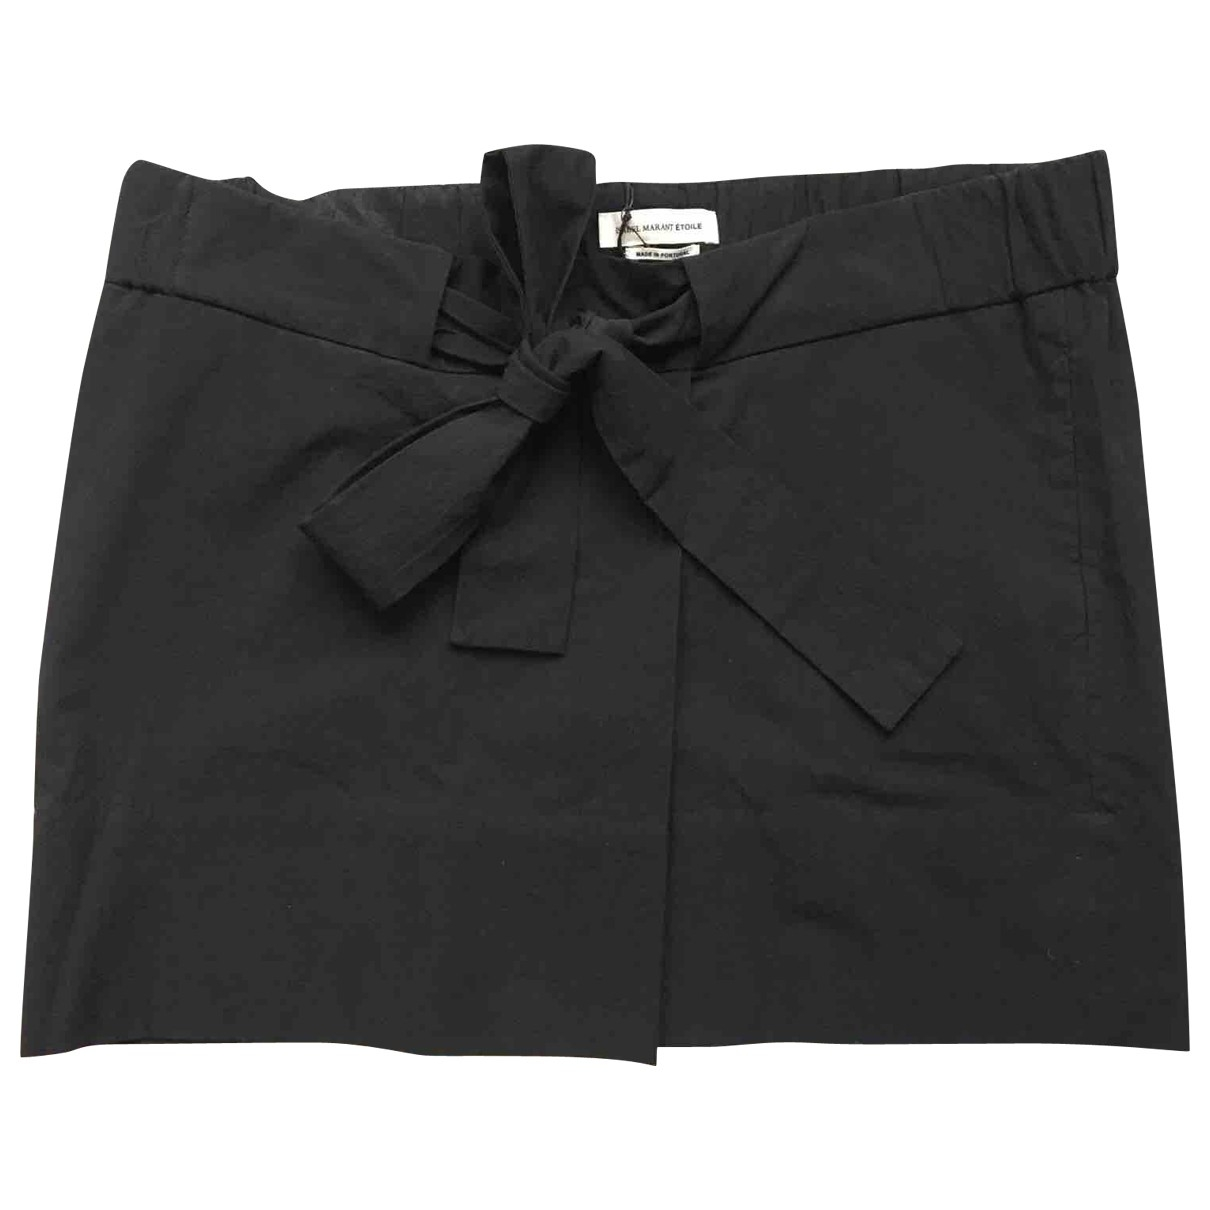 Isabel Marant Etoile \N Black Cotton skirt for Women 40 FR